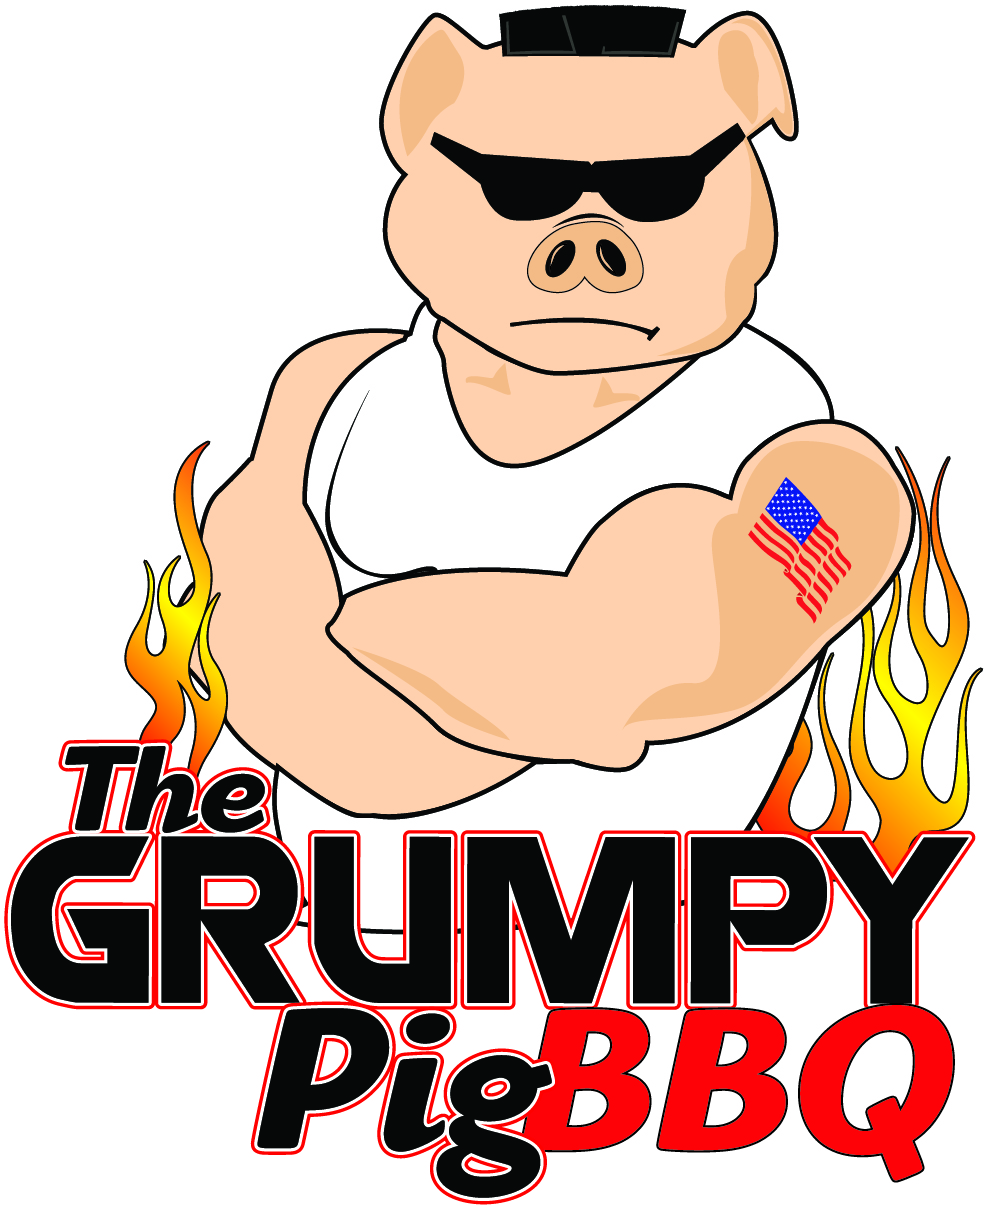 The Grumpy Pig BBQ Check out their menu HERE.